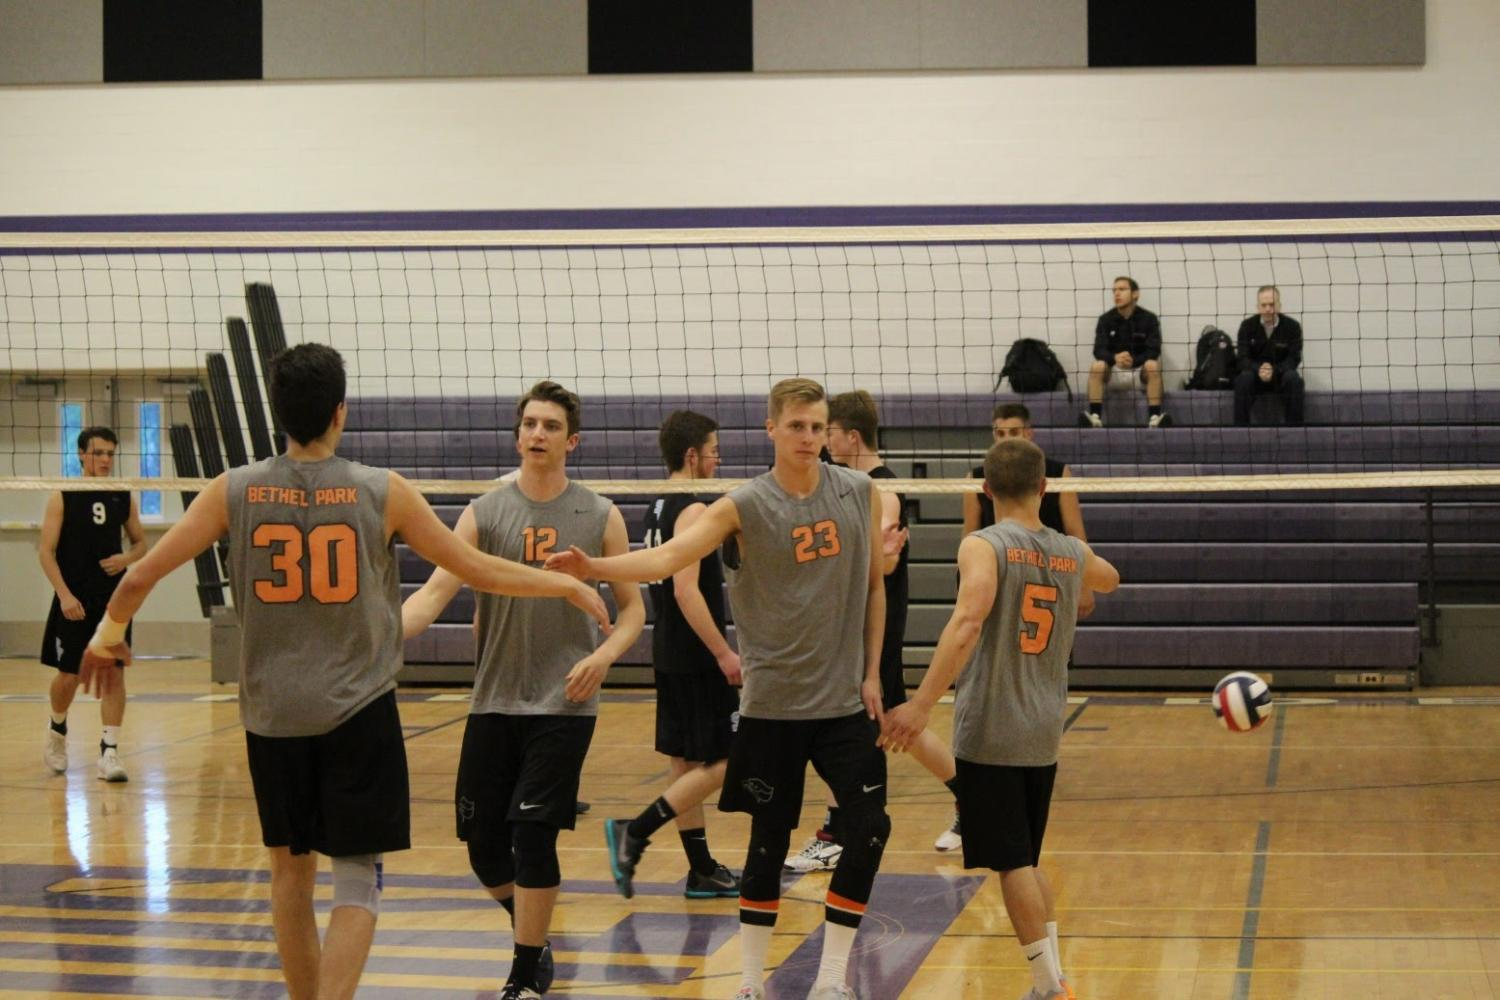 Boys+celebrate+scoring+a+point+during+their+3rd+place+match+against+Seneca+Valley+on+May+24